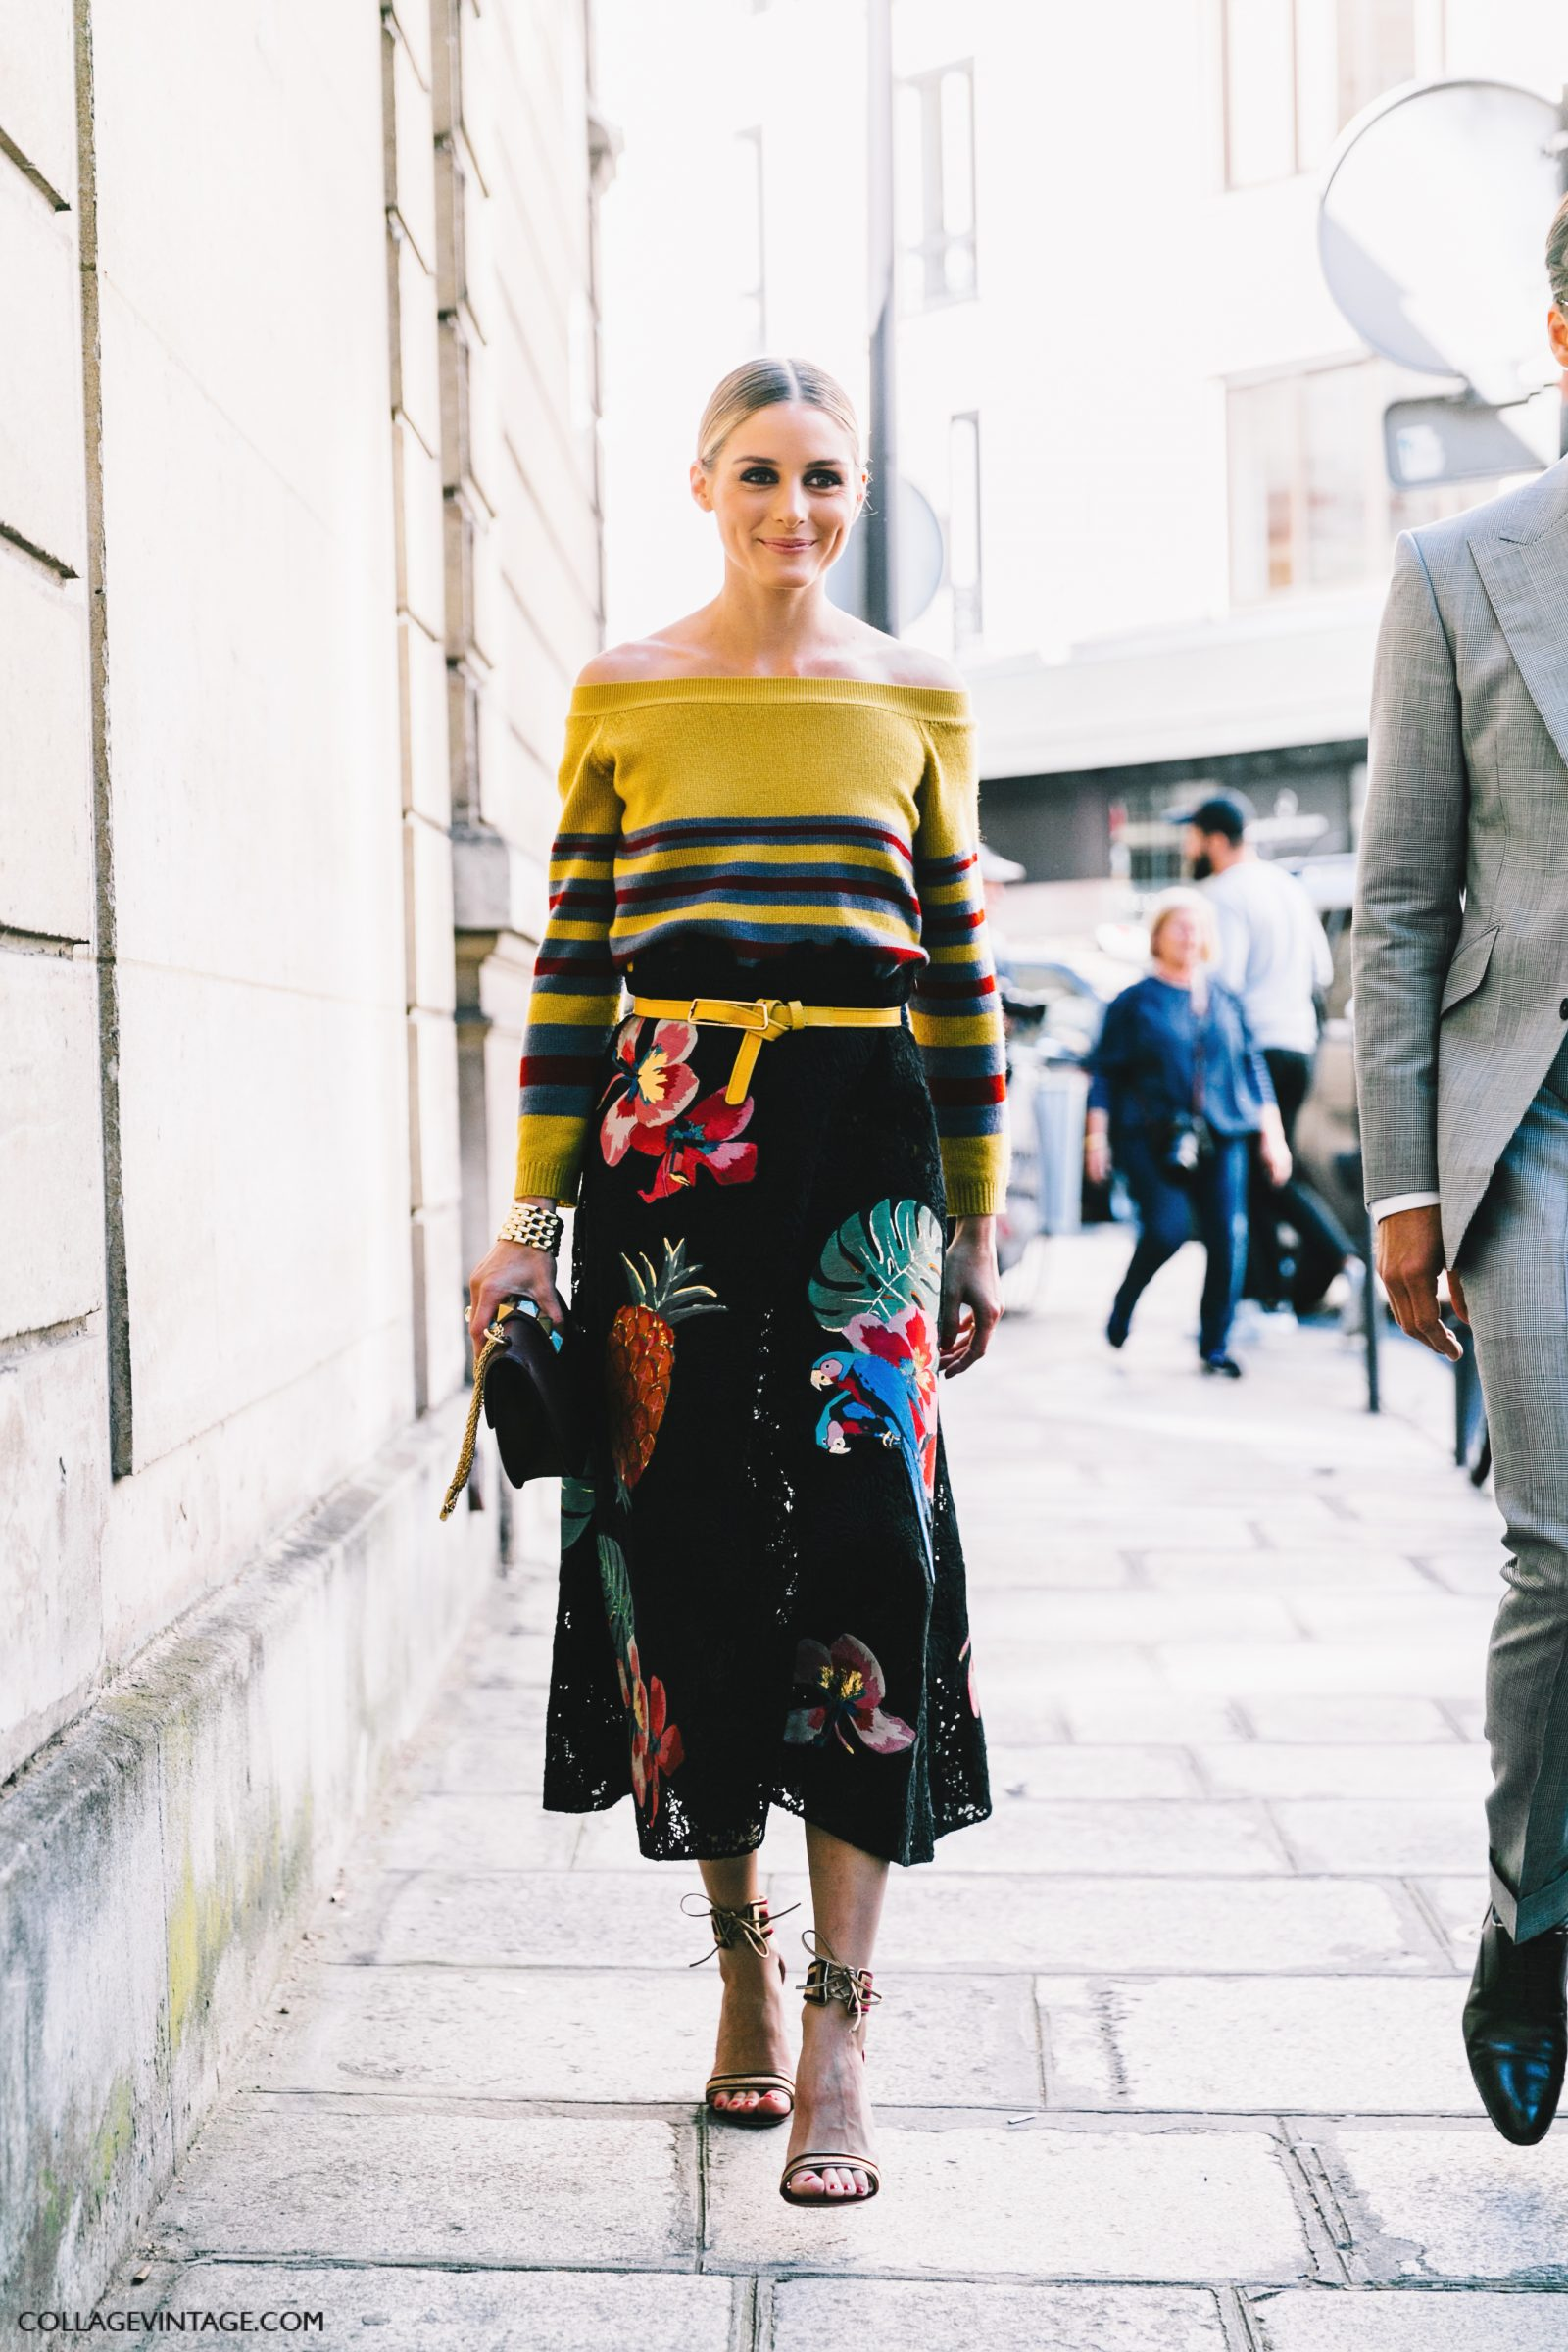 pfw-paris_fashion_week_ss17-street_style-outfits-collage_vintage-valentino-balenciaga-celine-102